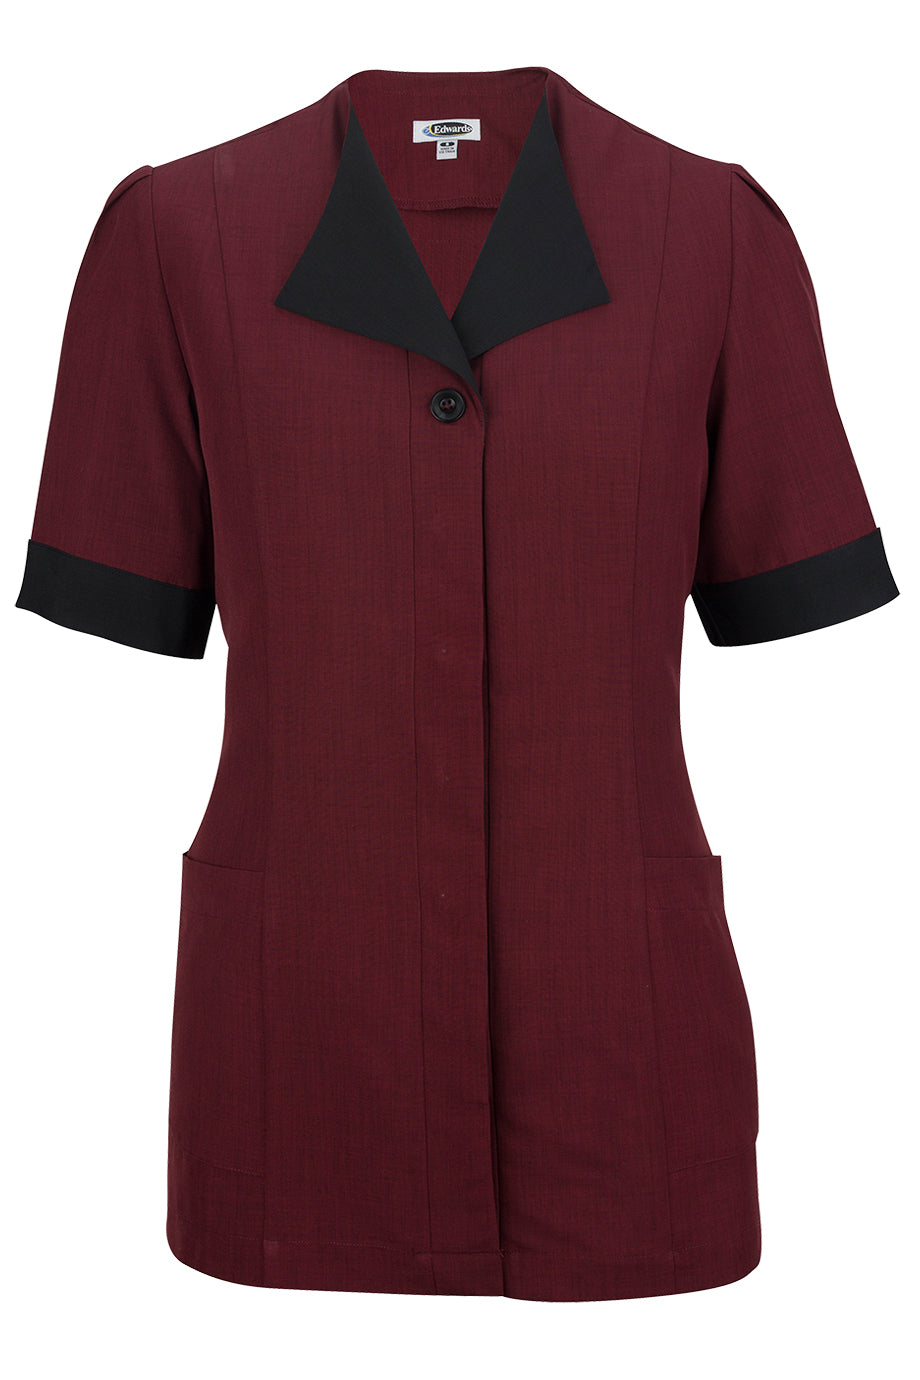 Women's Pinnacle Tunic - Econo Lodge Inn & Suites